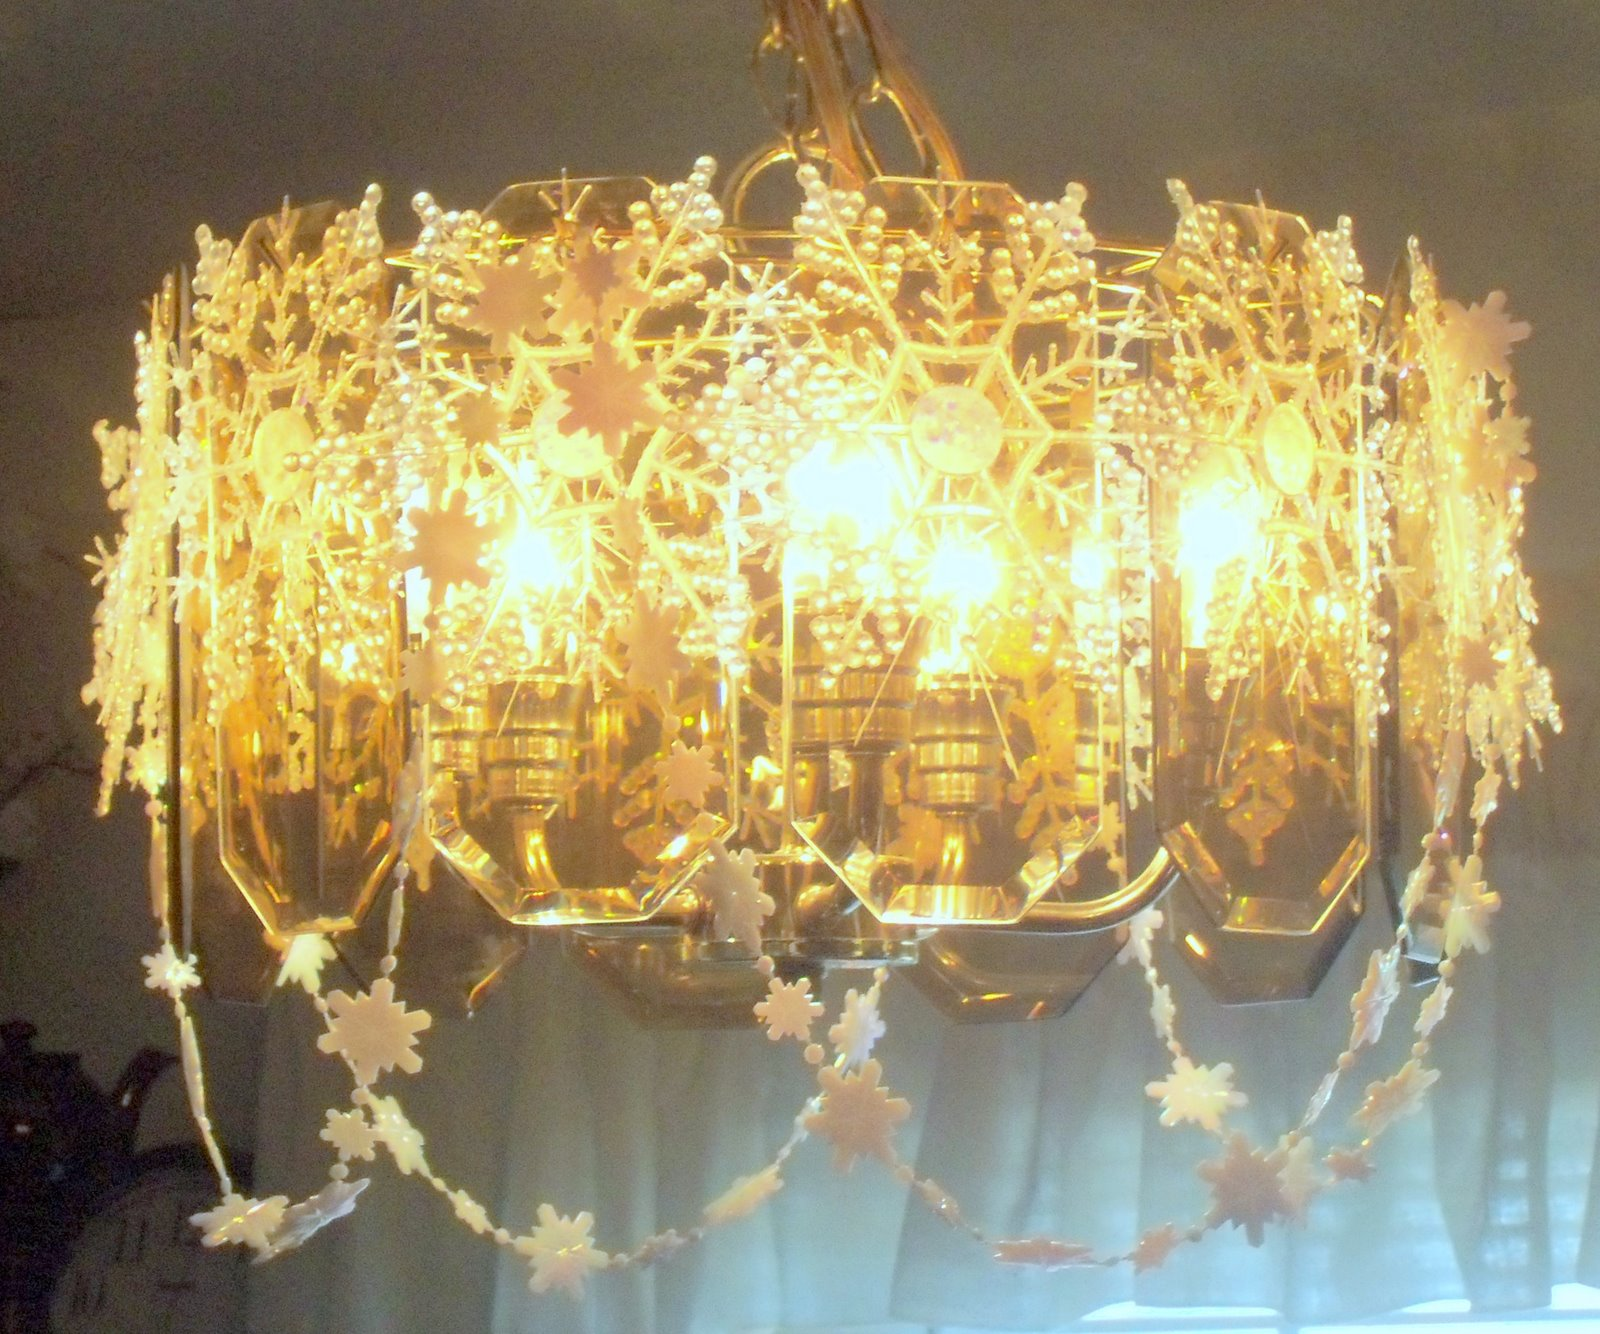 Make the best of things snowflake chandelier first version look at the beautiful crystally snowflakey chandelier i really really like it and so does the welding man it looks like a big christmas wedding cake mozeypictures Choice Image